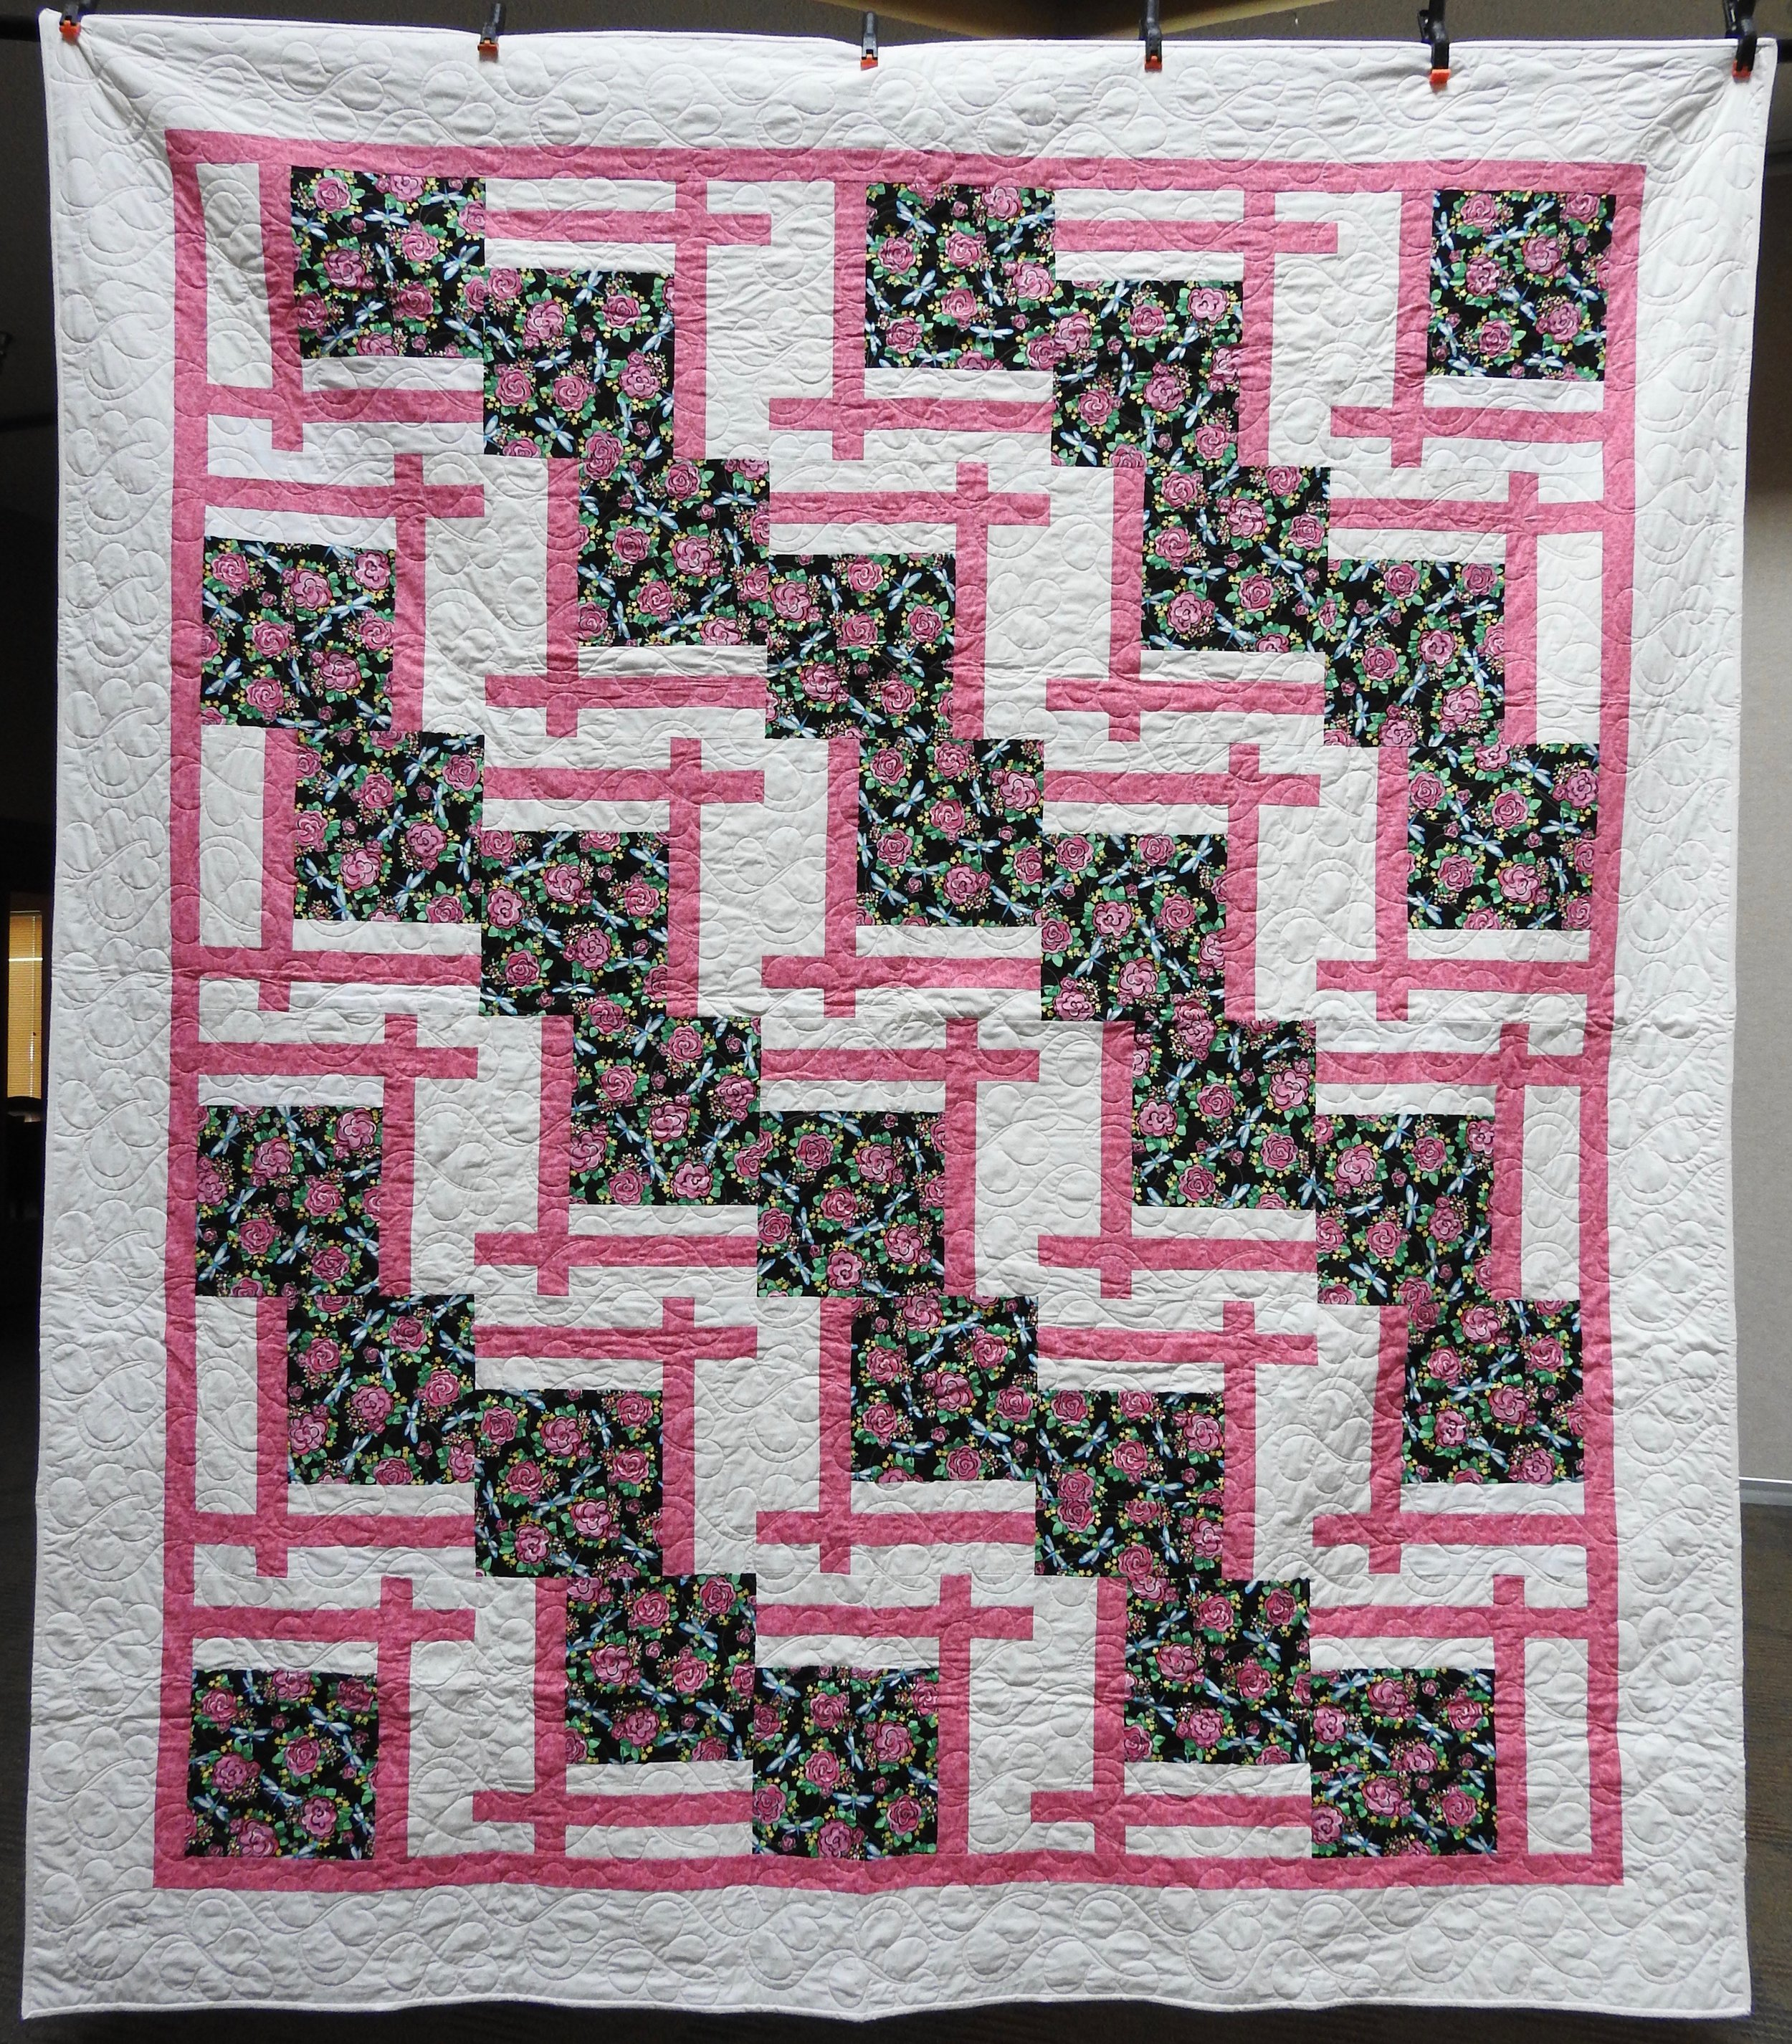 Posies in Pink, Pieced by Ruby Bontreger, Edge to Edge Machine Quilted, Signed & Dated, donated by First Mennonite, Middlebury, 80 x 91""